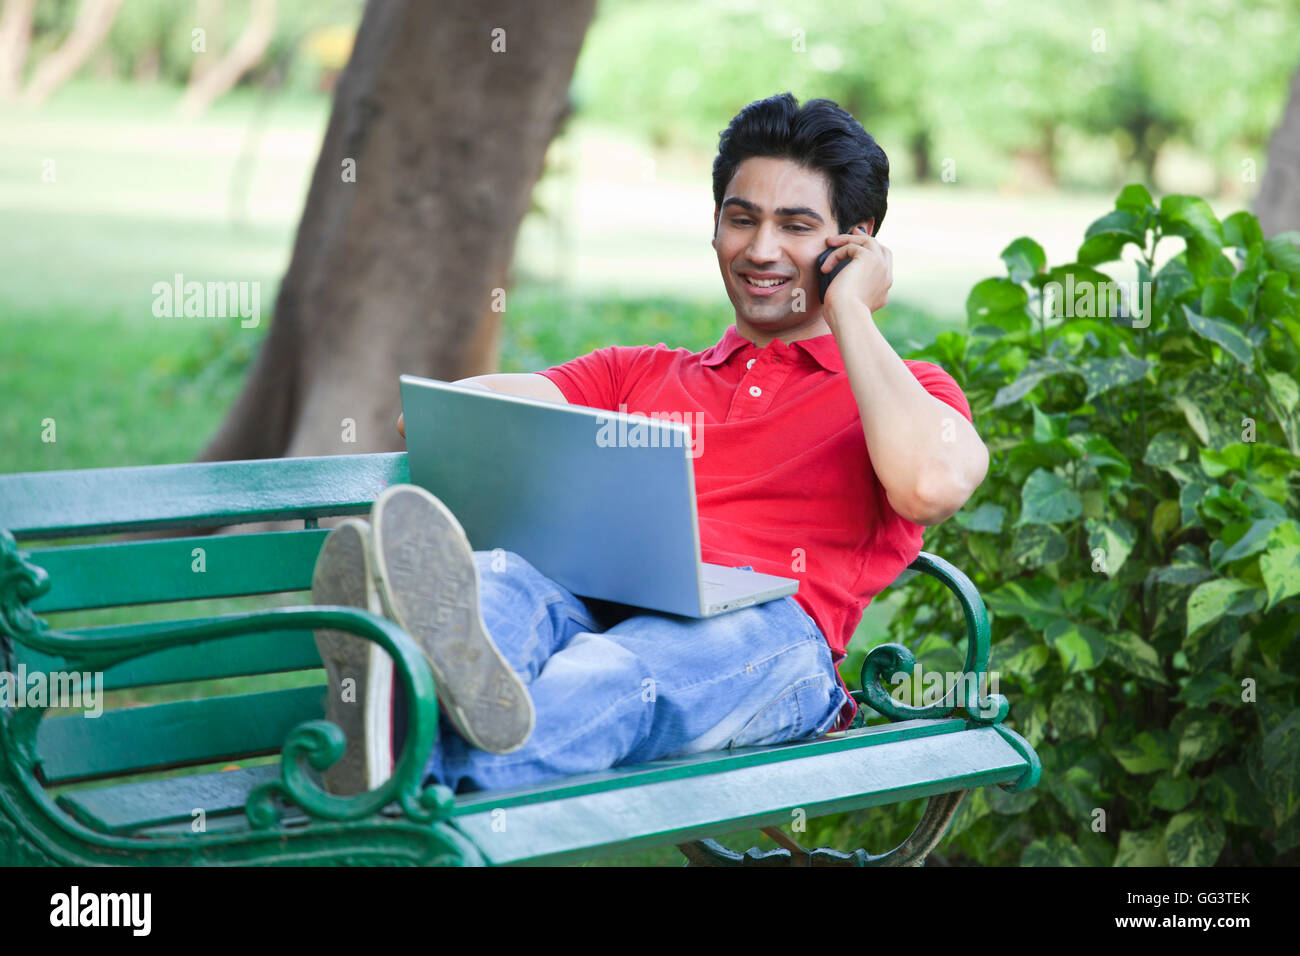 Young man on the cal while using laptop - Stock Image